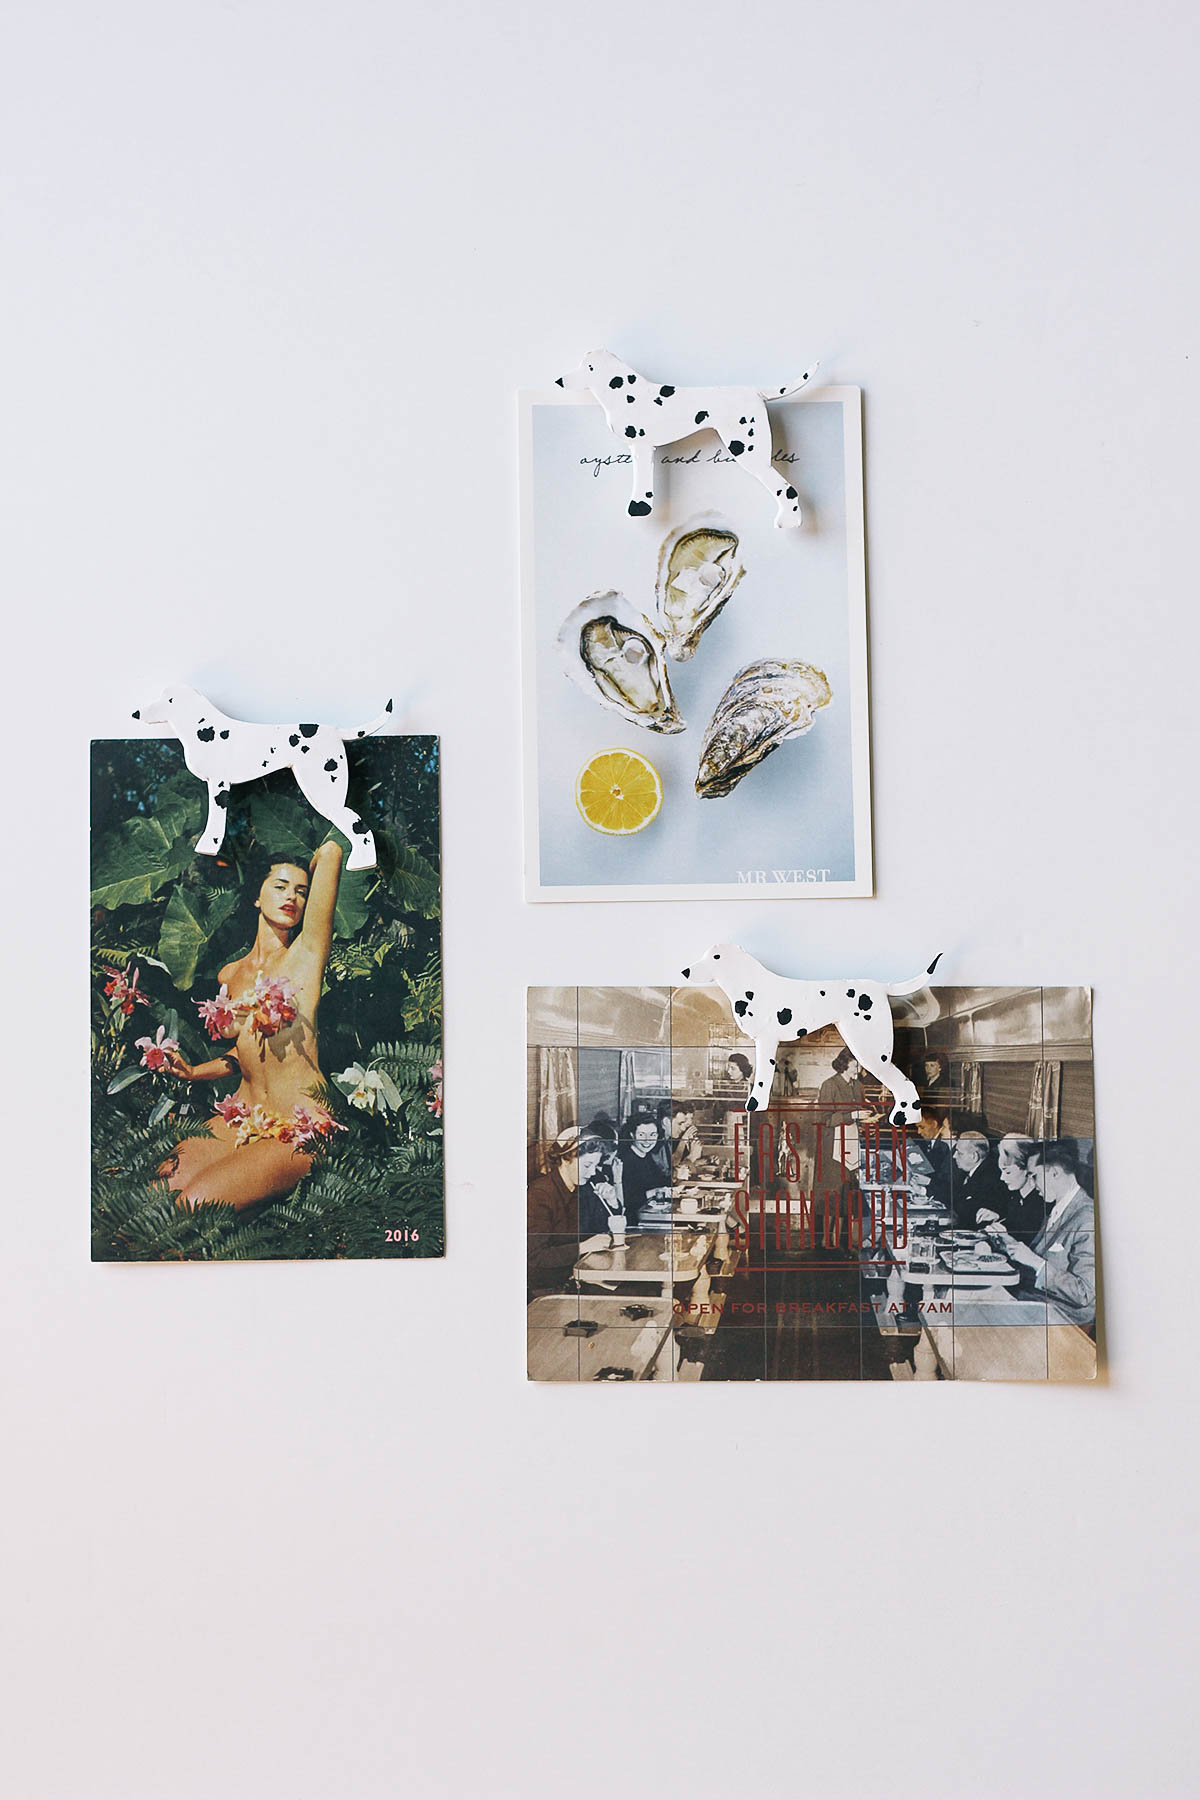 Dress up your refrigerator with these charming DIY dalmatian magnets made from oven-bake clay.